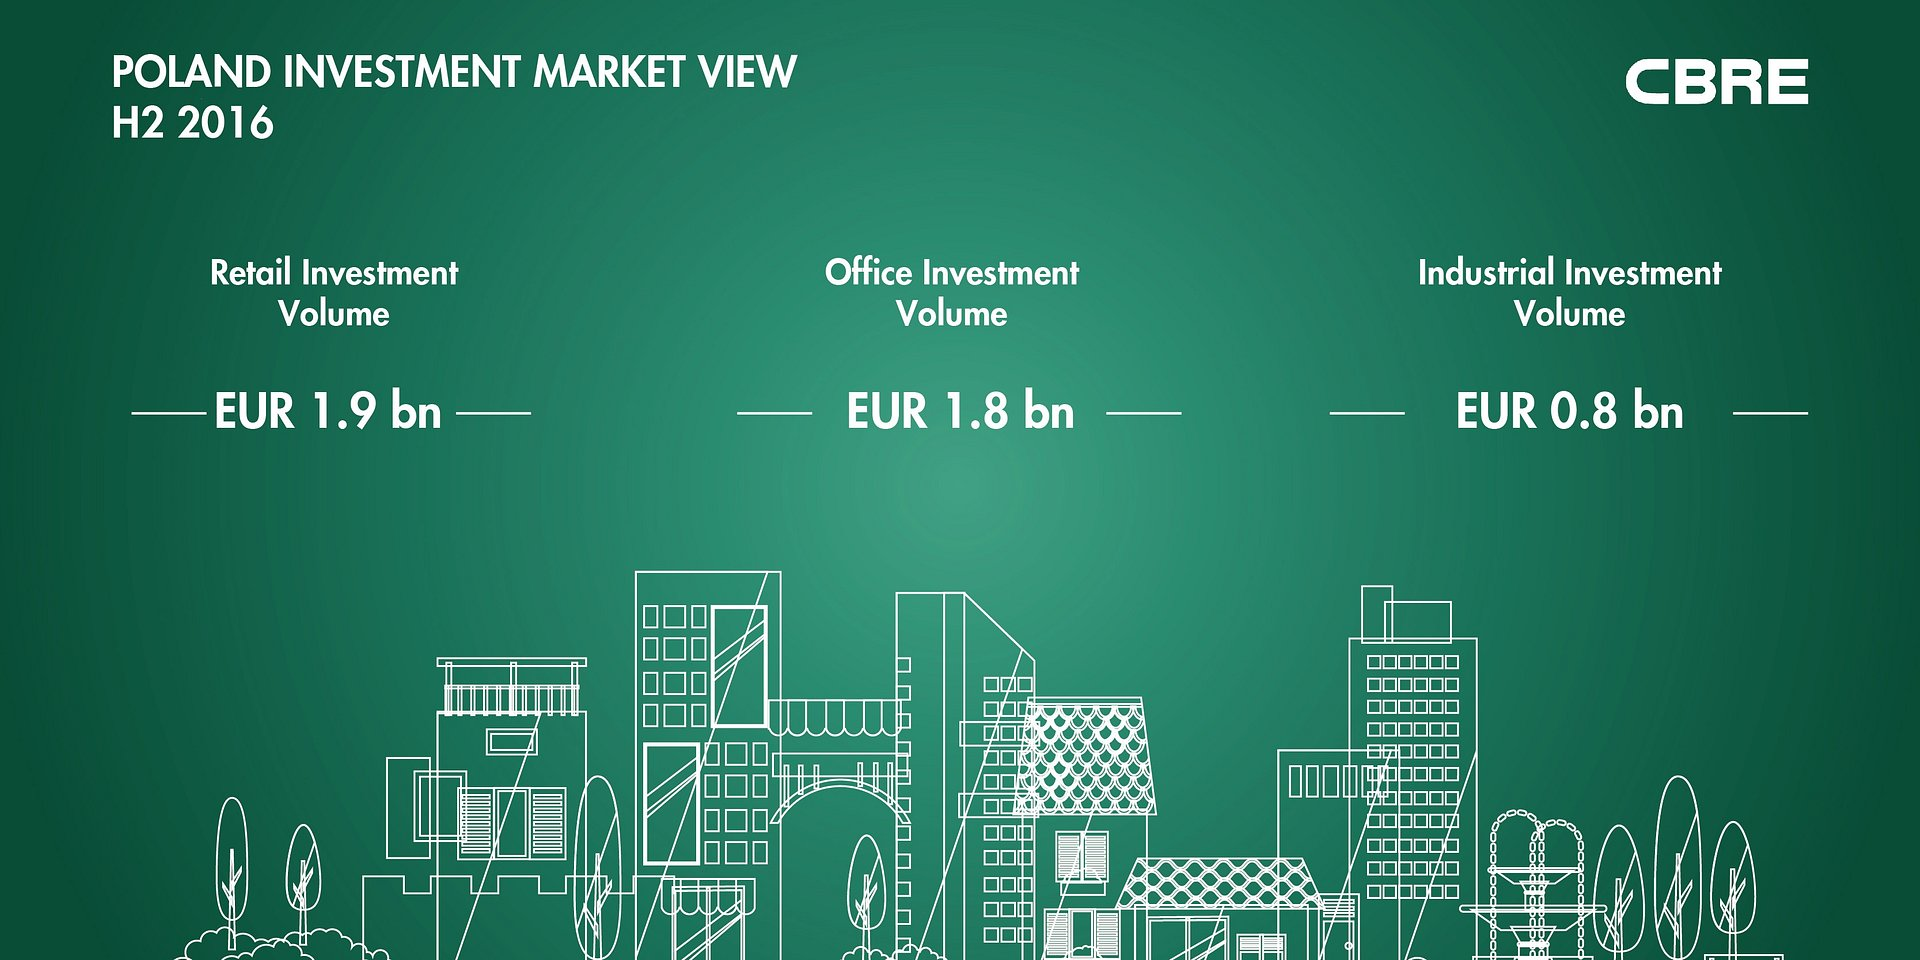 THE POLISH INVESTMENT MARKET REMAINS THE STANDOUT PERFORMER ACROSS THE CEE REGION